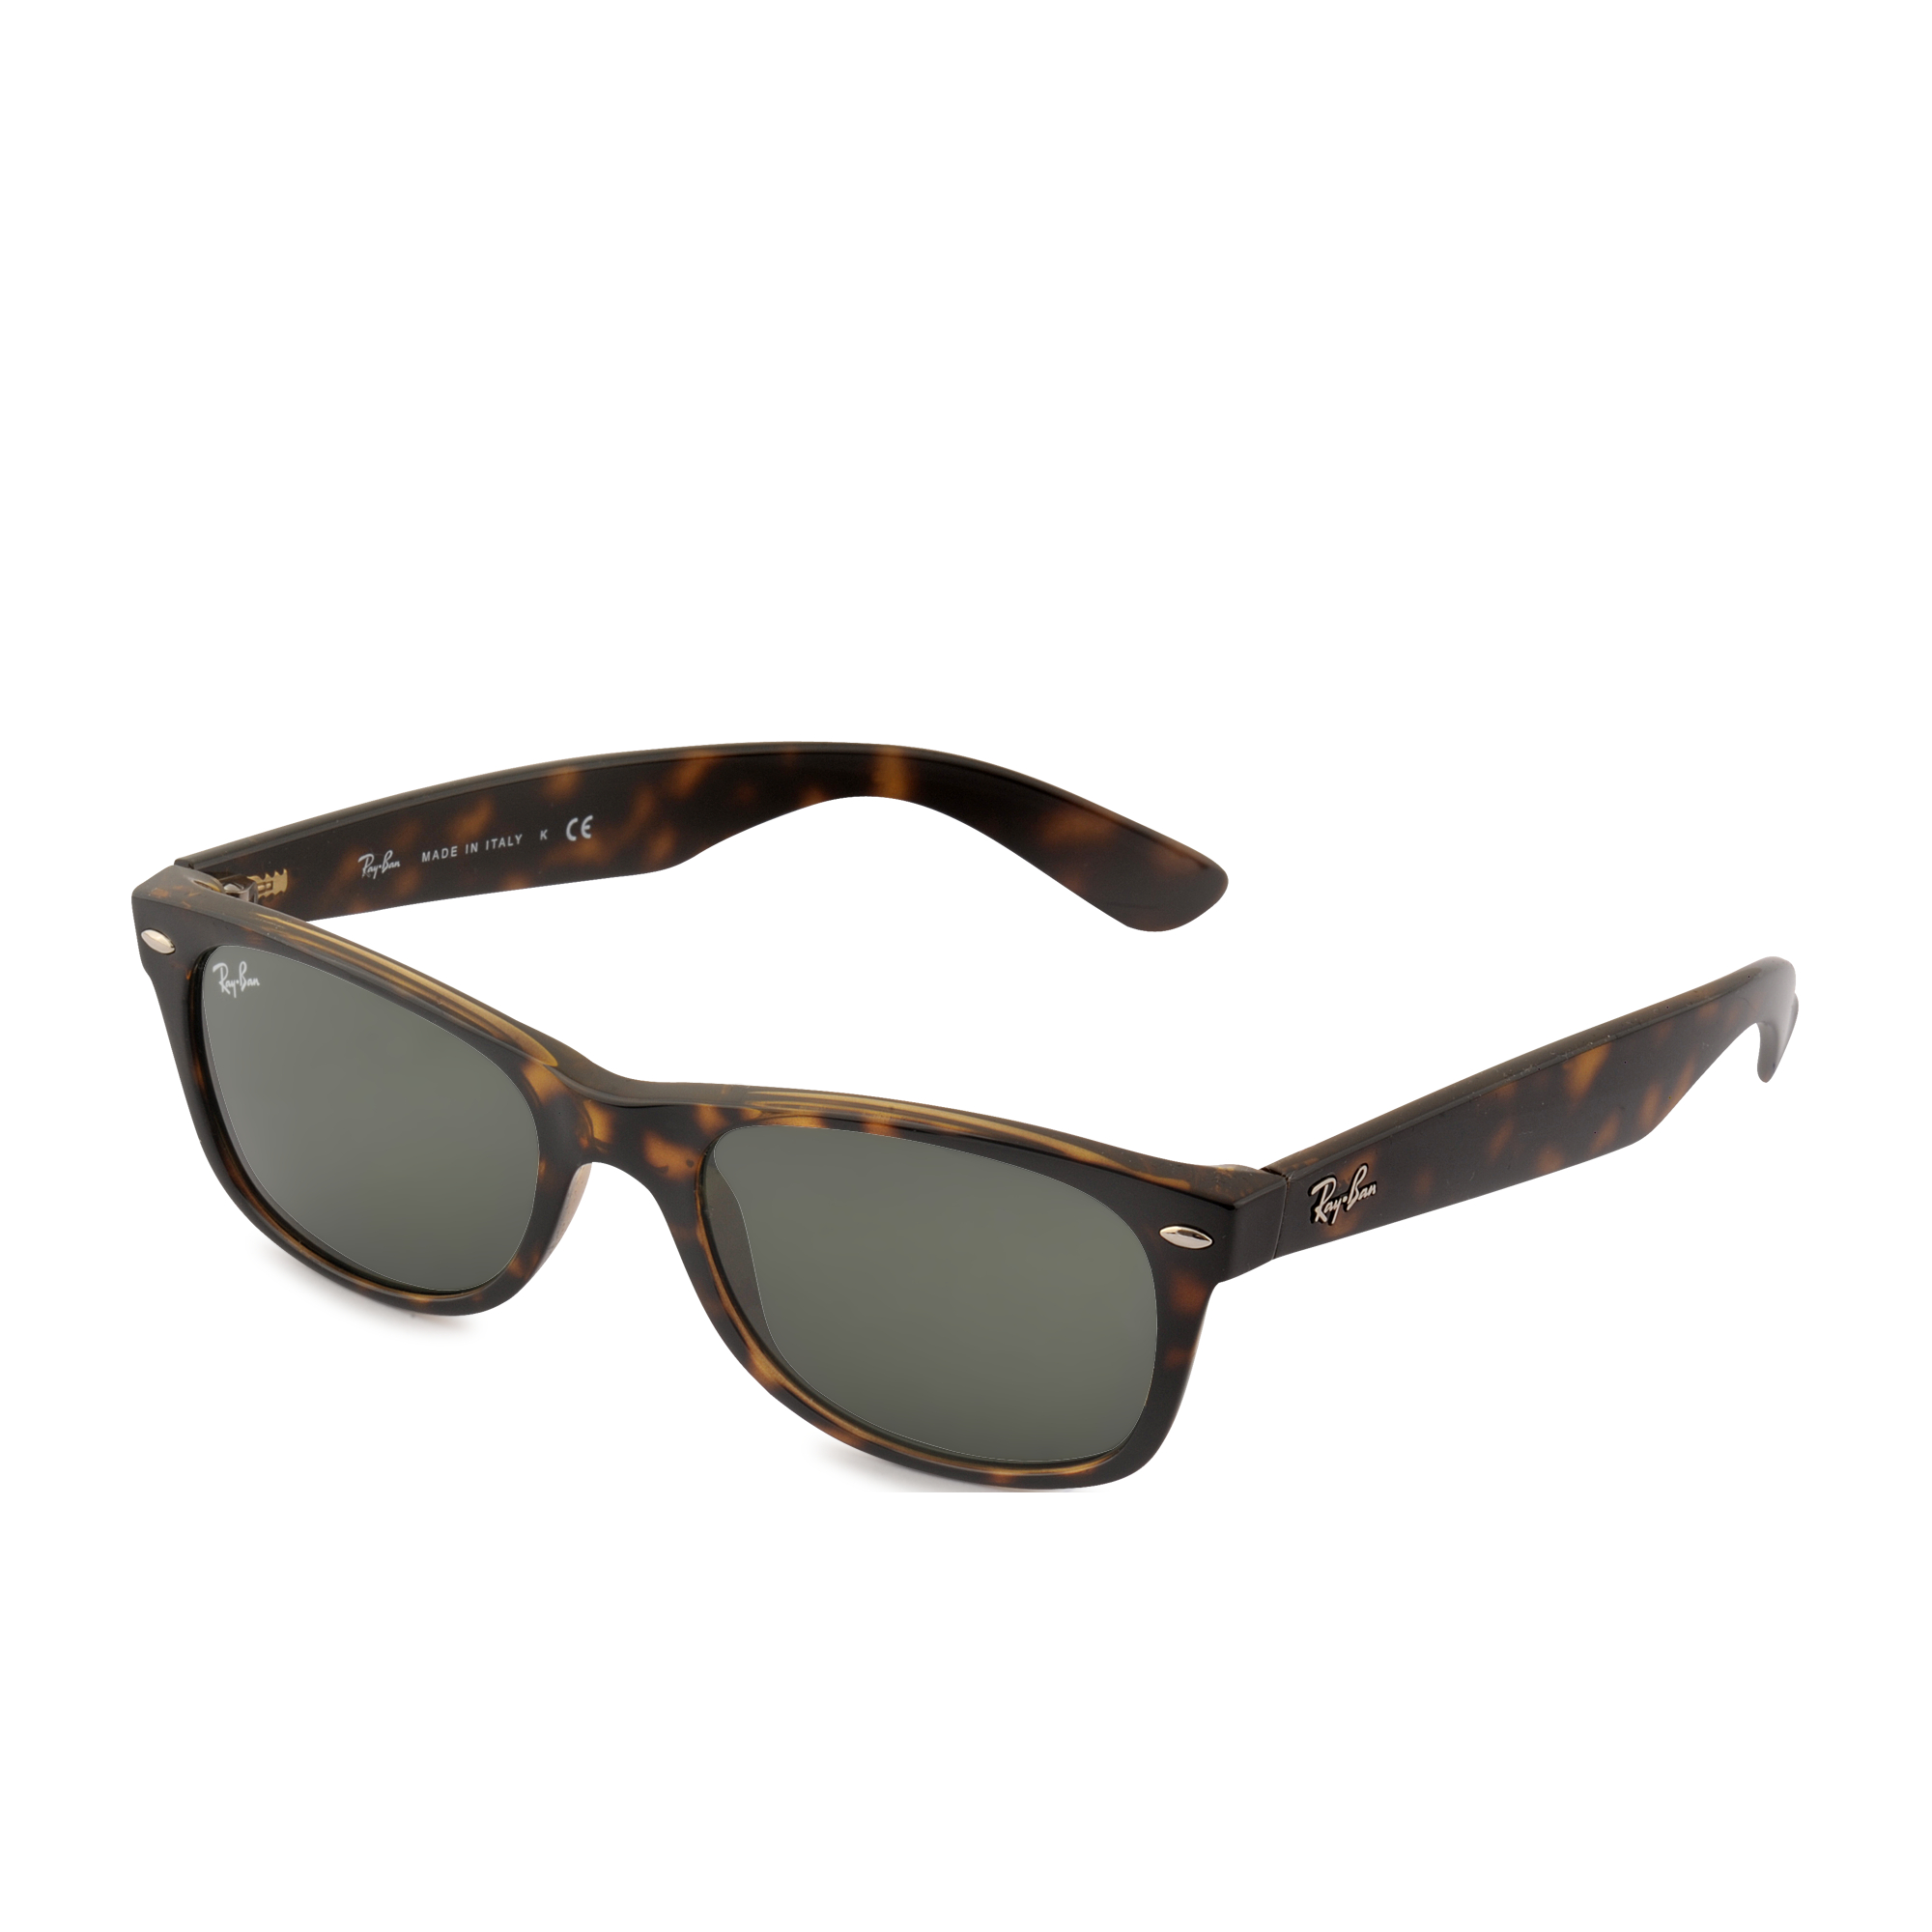 ray ban new wayfarer 2132 sunglasses in brown lyst. Black Bedroom Furniture Sets. Home Design Ideas